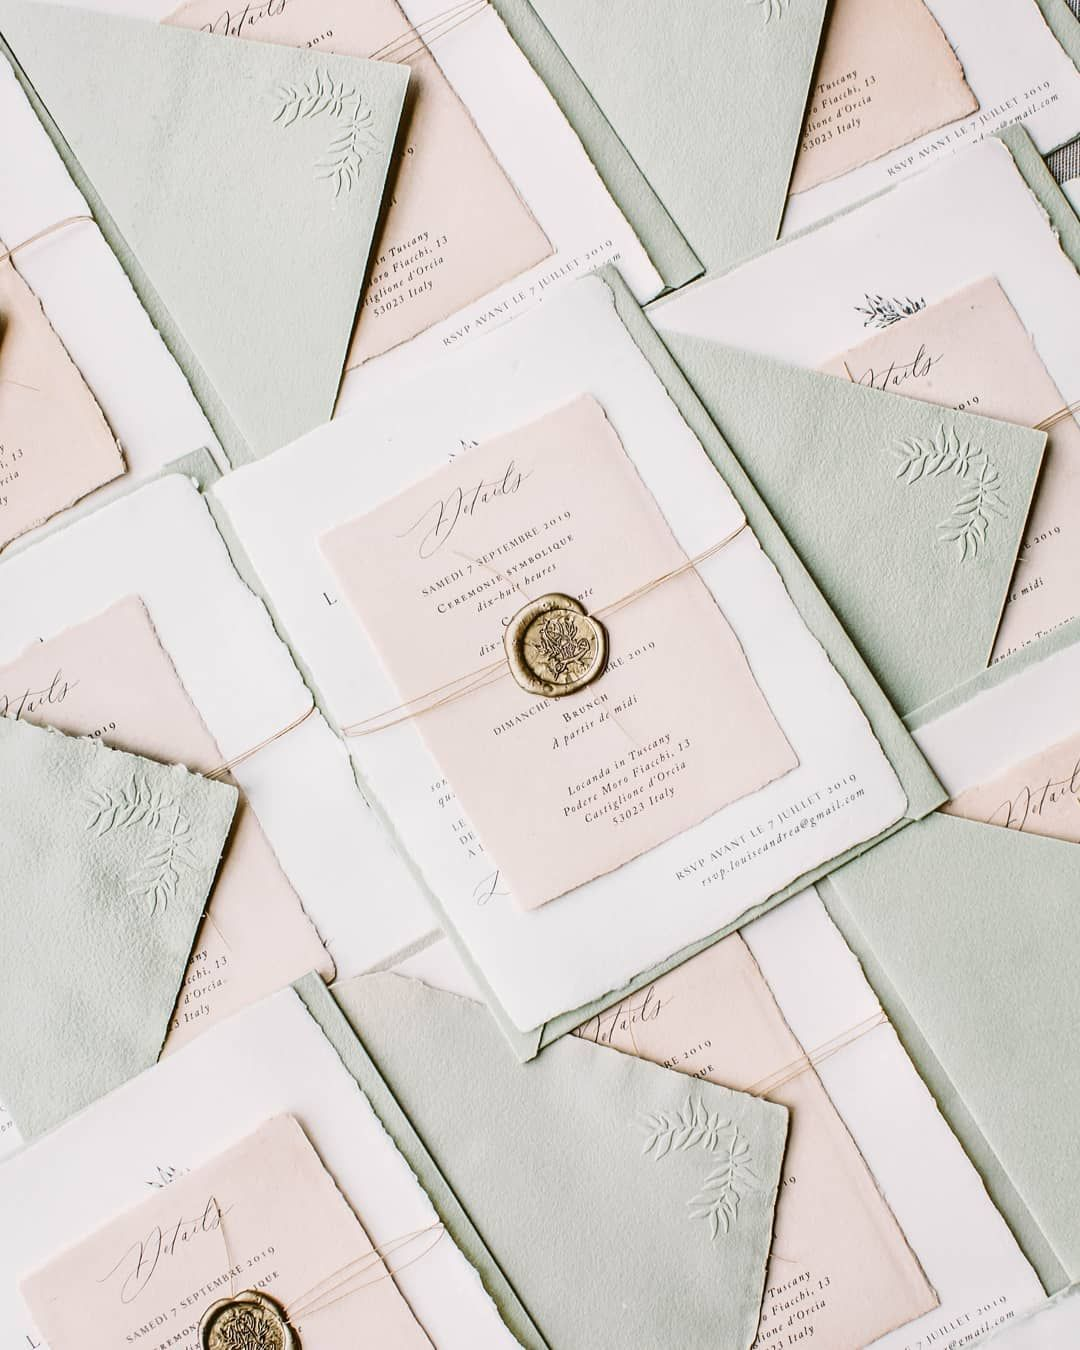 Laura E Patrick On Instagram Happy Friday To You All Sharing These Beautiful Invites Which Headed Out Last Week To Paris For An Upcoming Wedding In Tuscany Wedding Invitations Diy